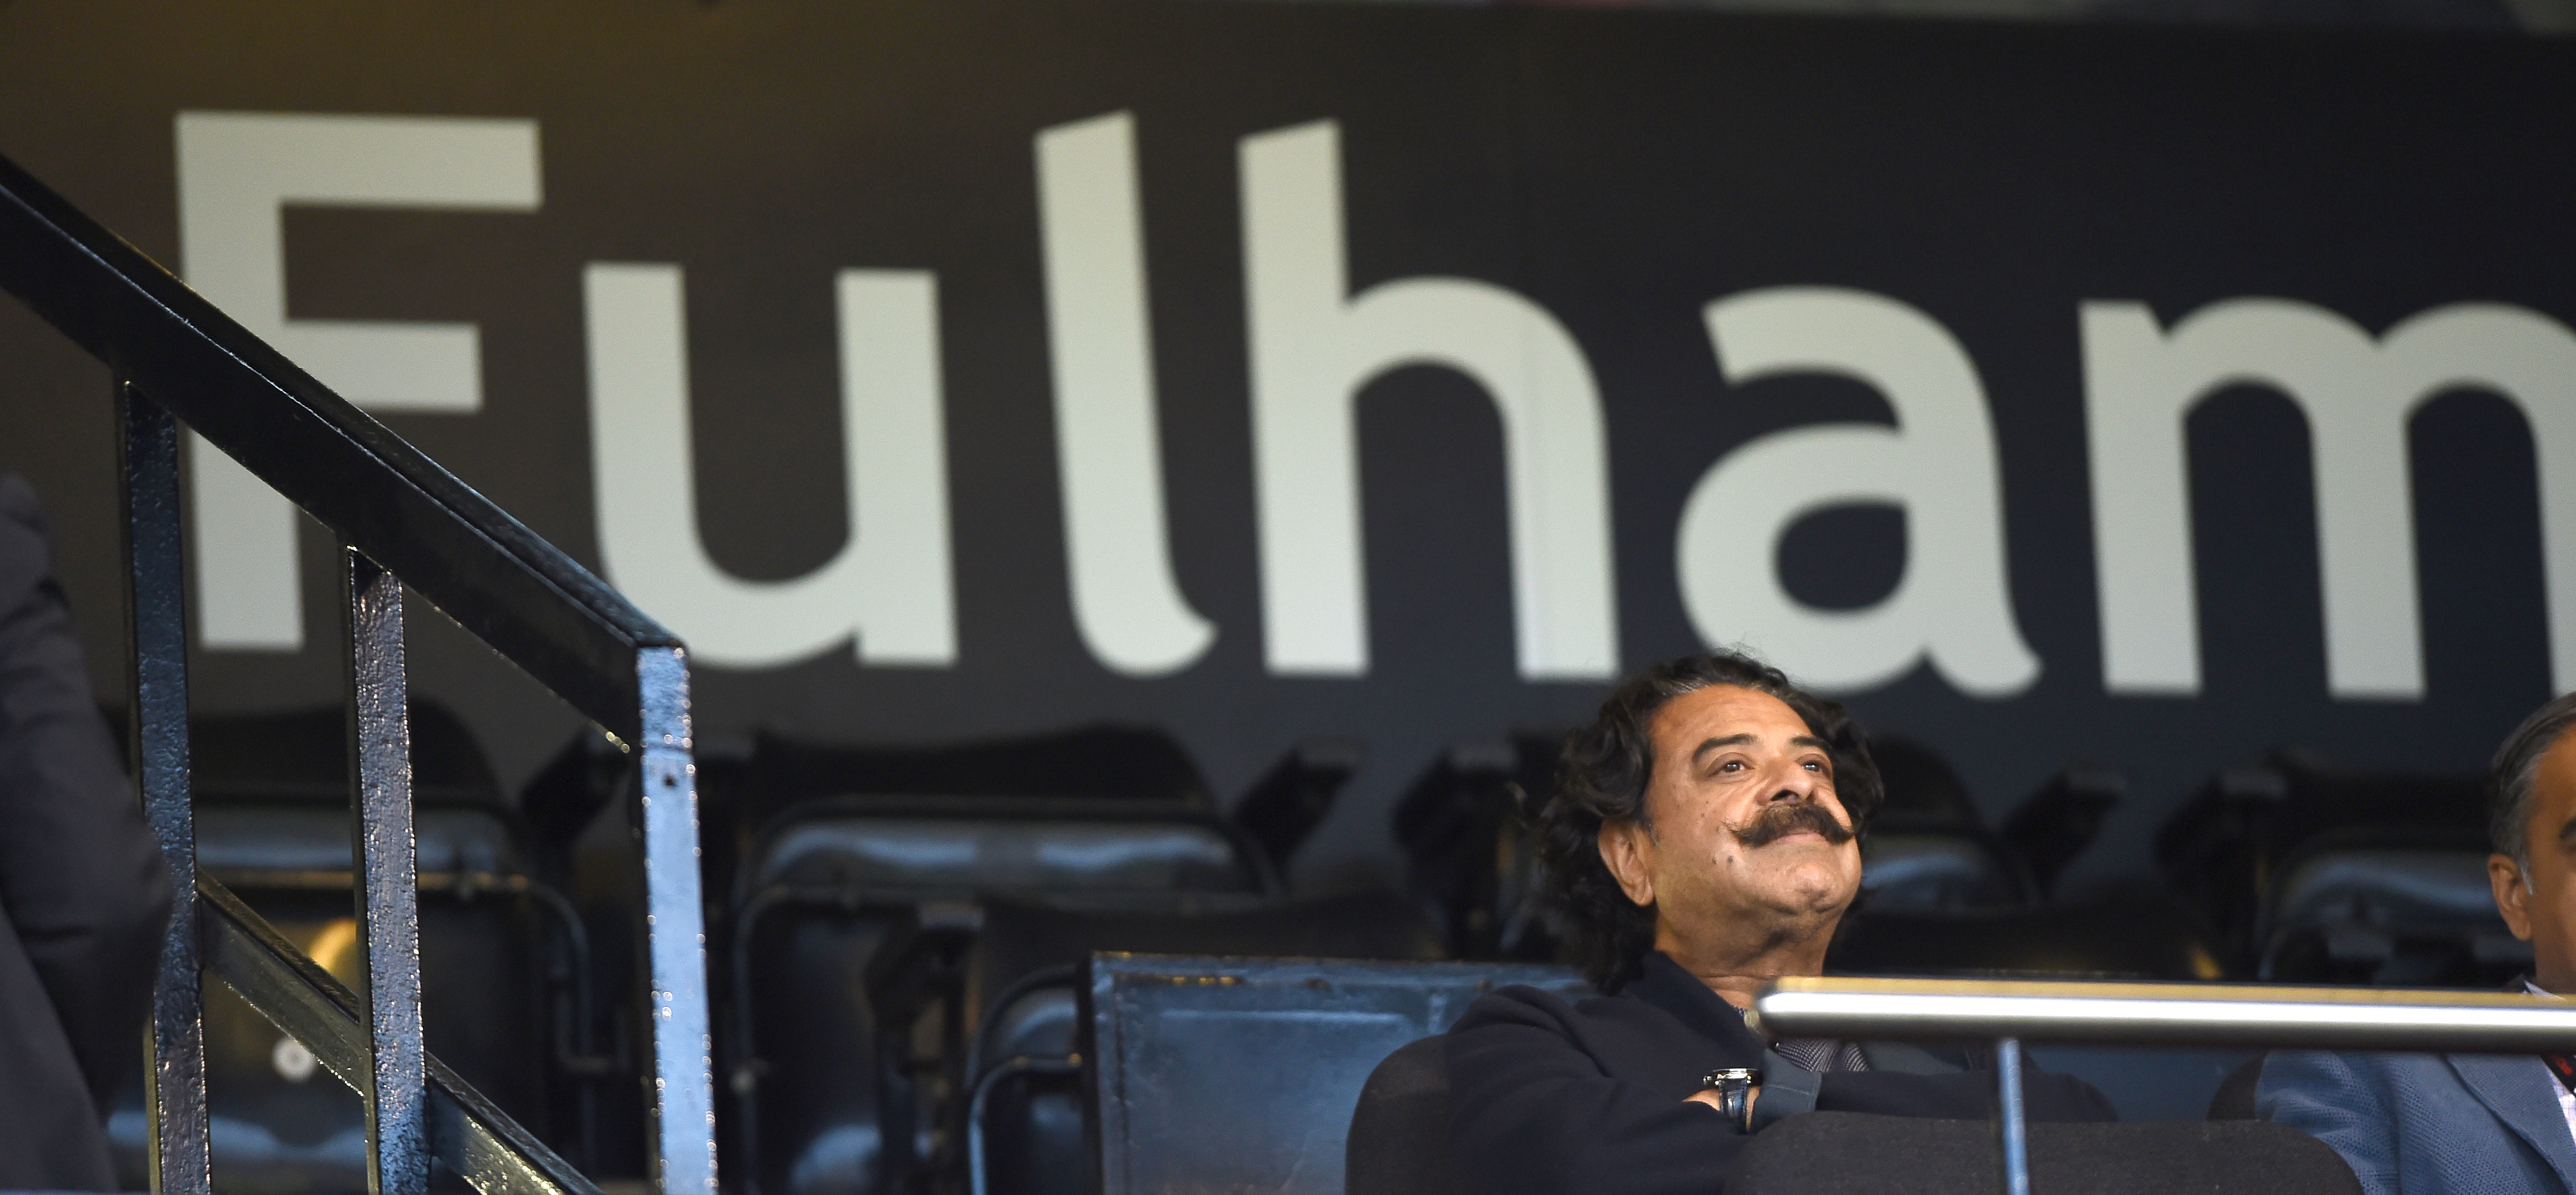 Fulham owner Khan could soon own Wembley stadium. Image: PA Images